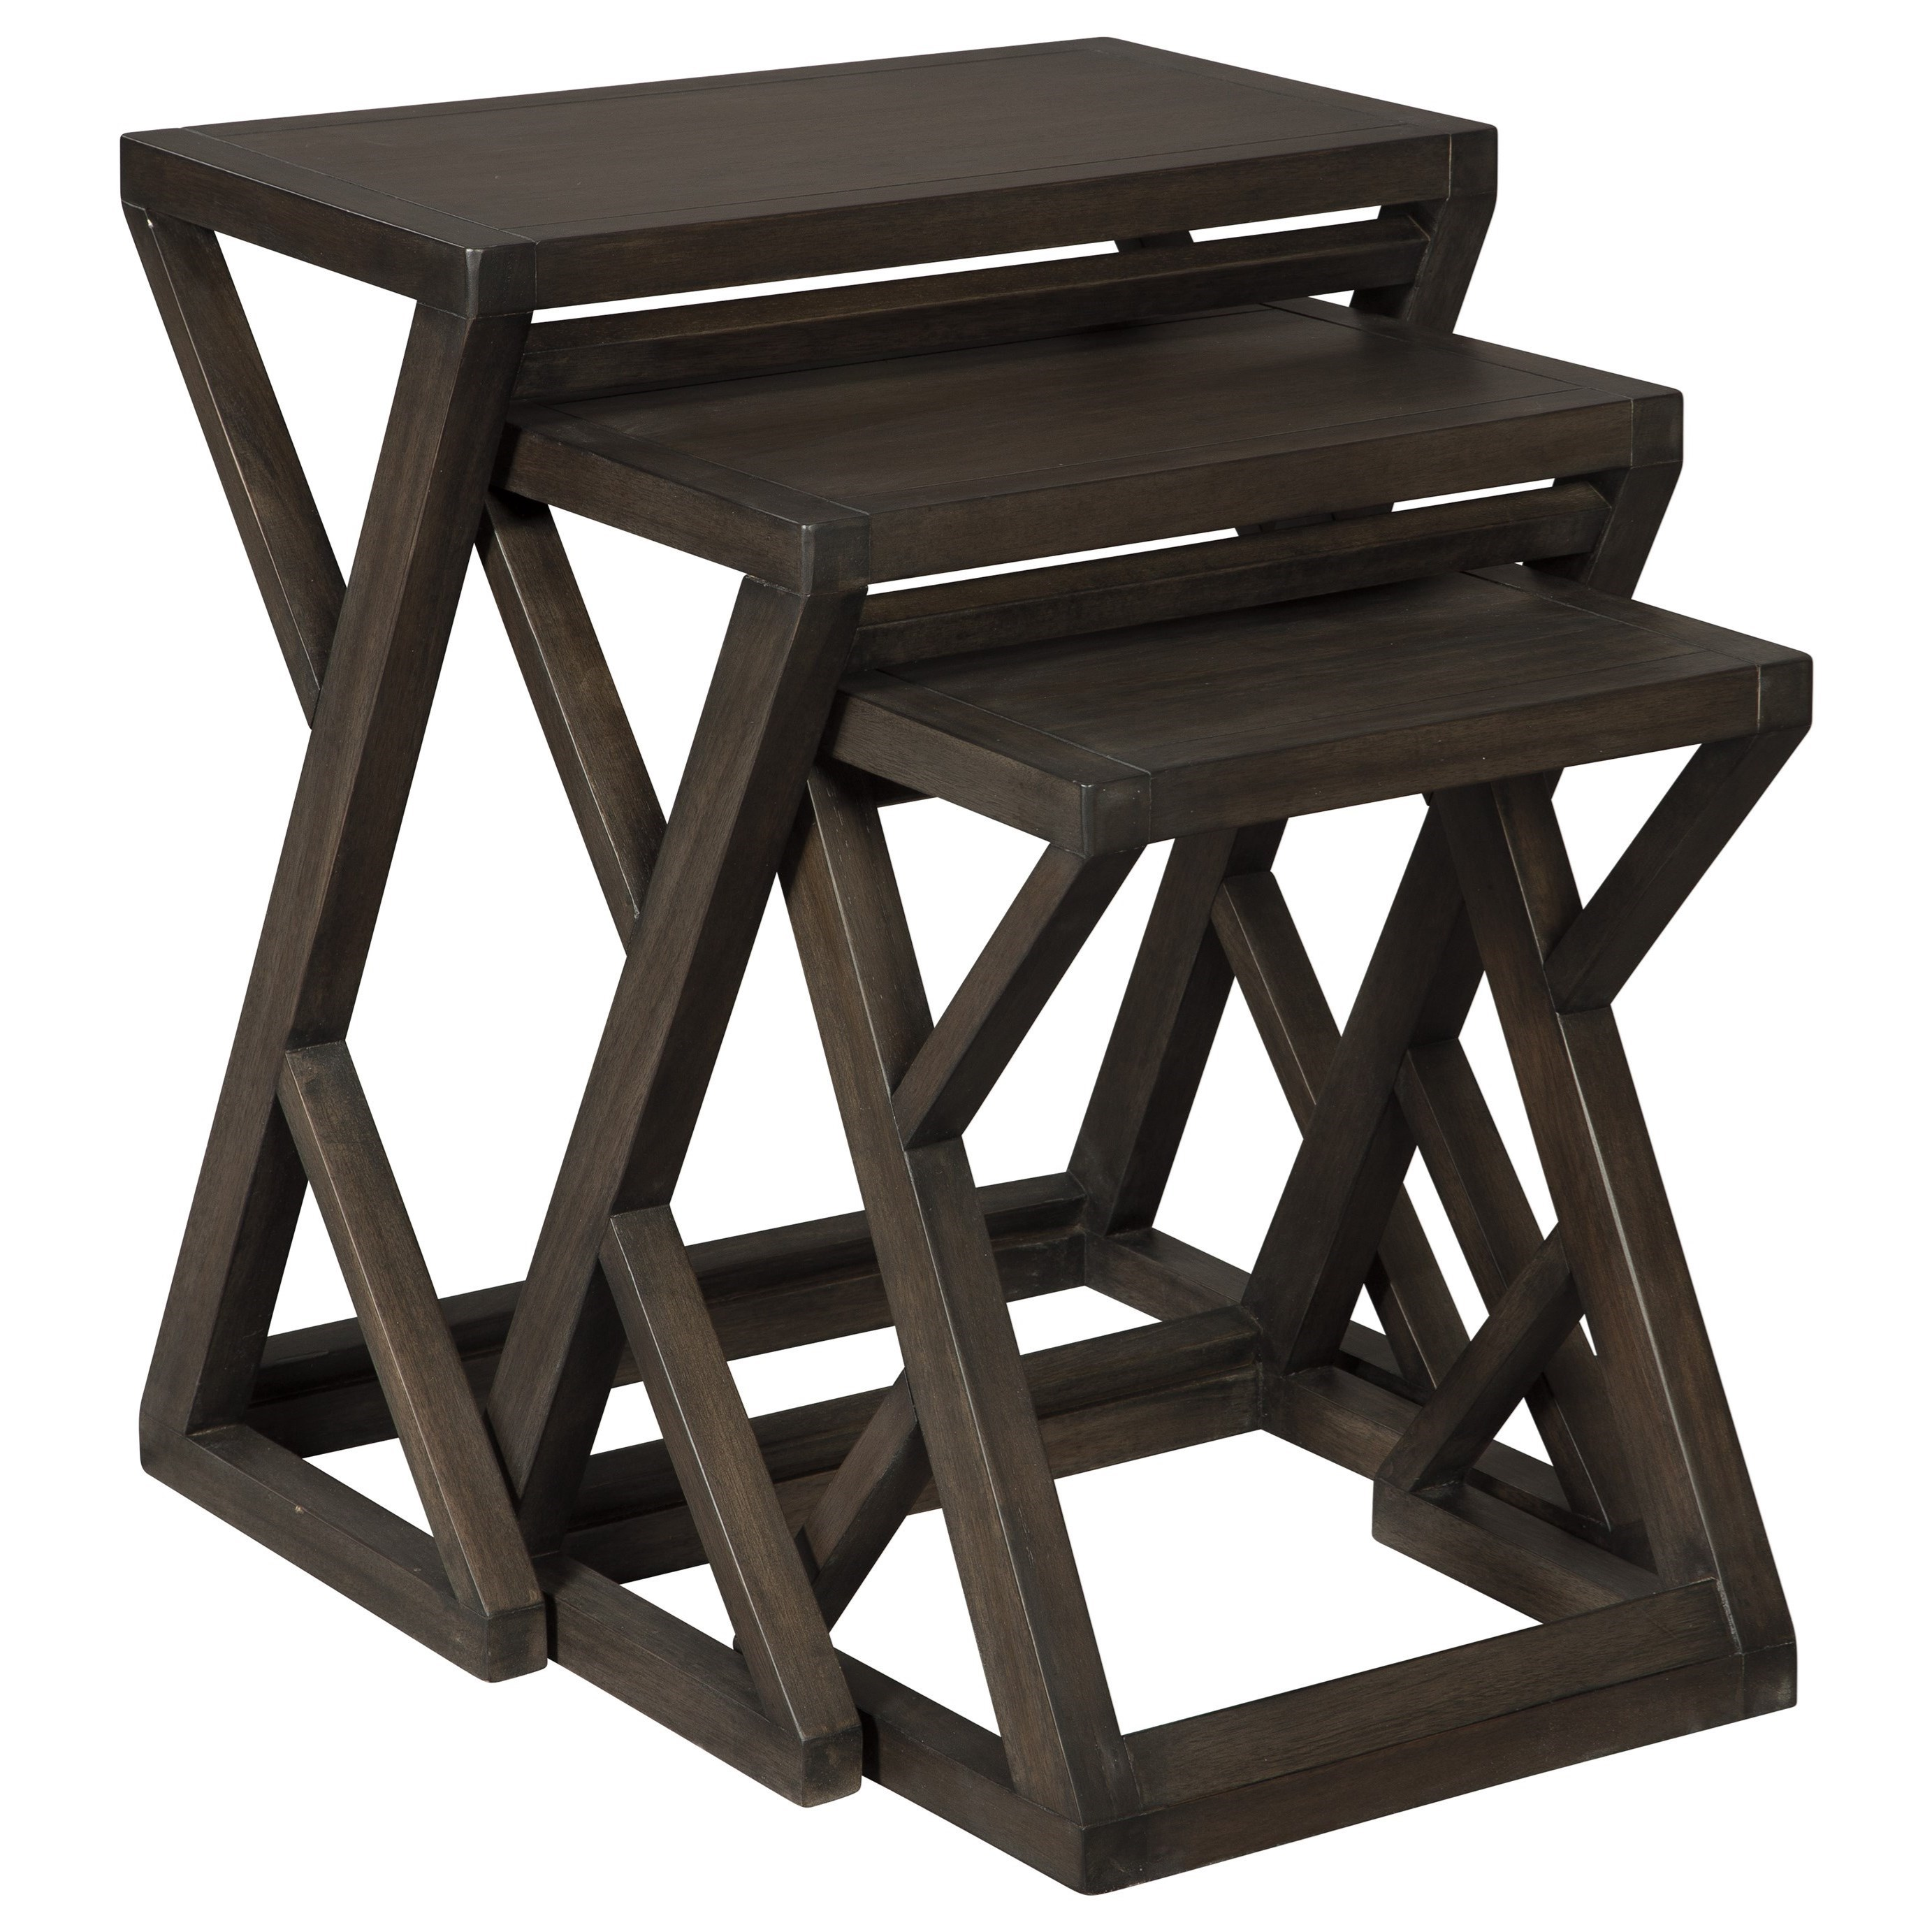 Cairnburg Accent Table (Set of 3) by Signature at Walker's Furniture